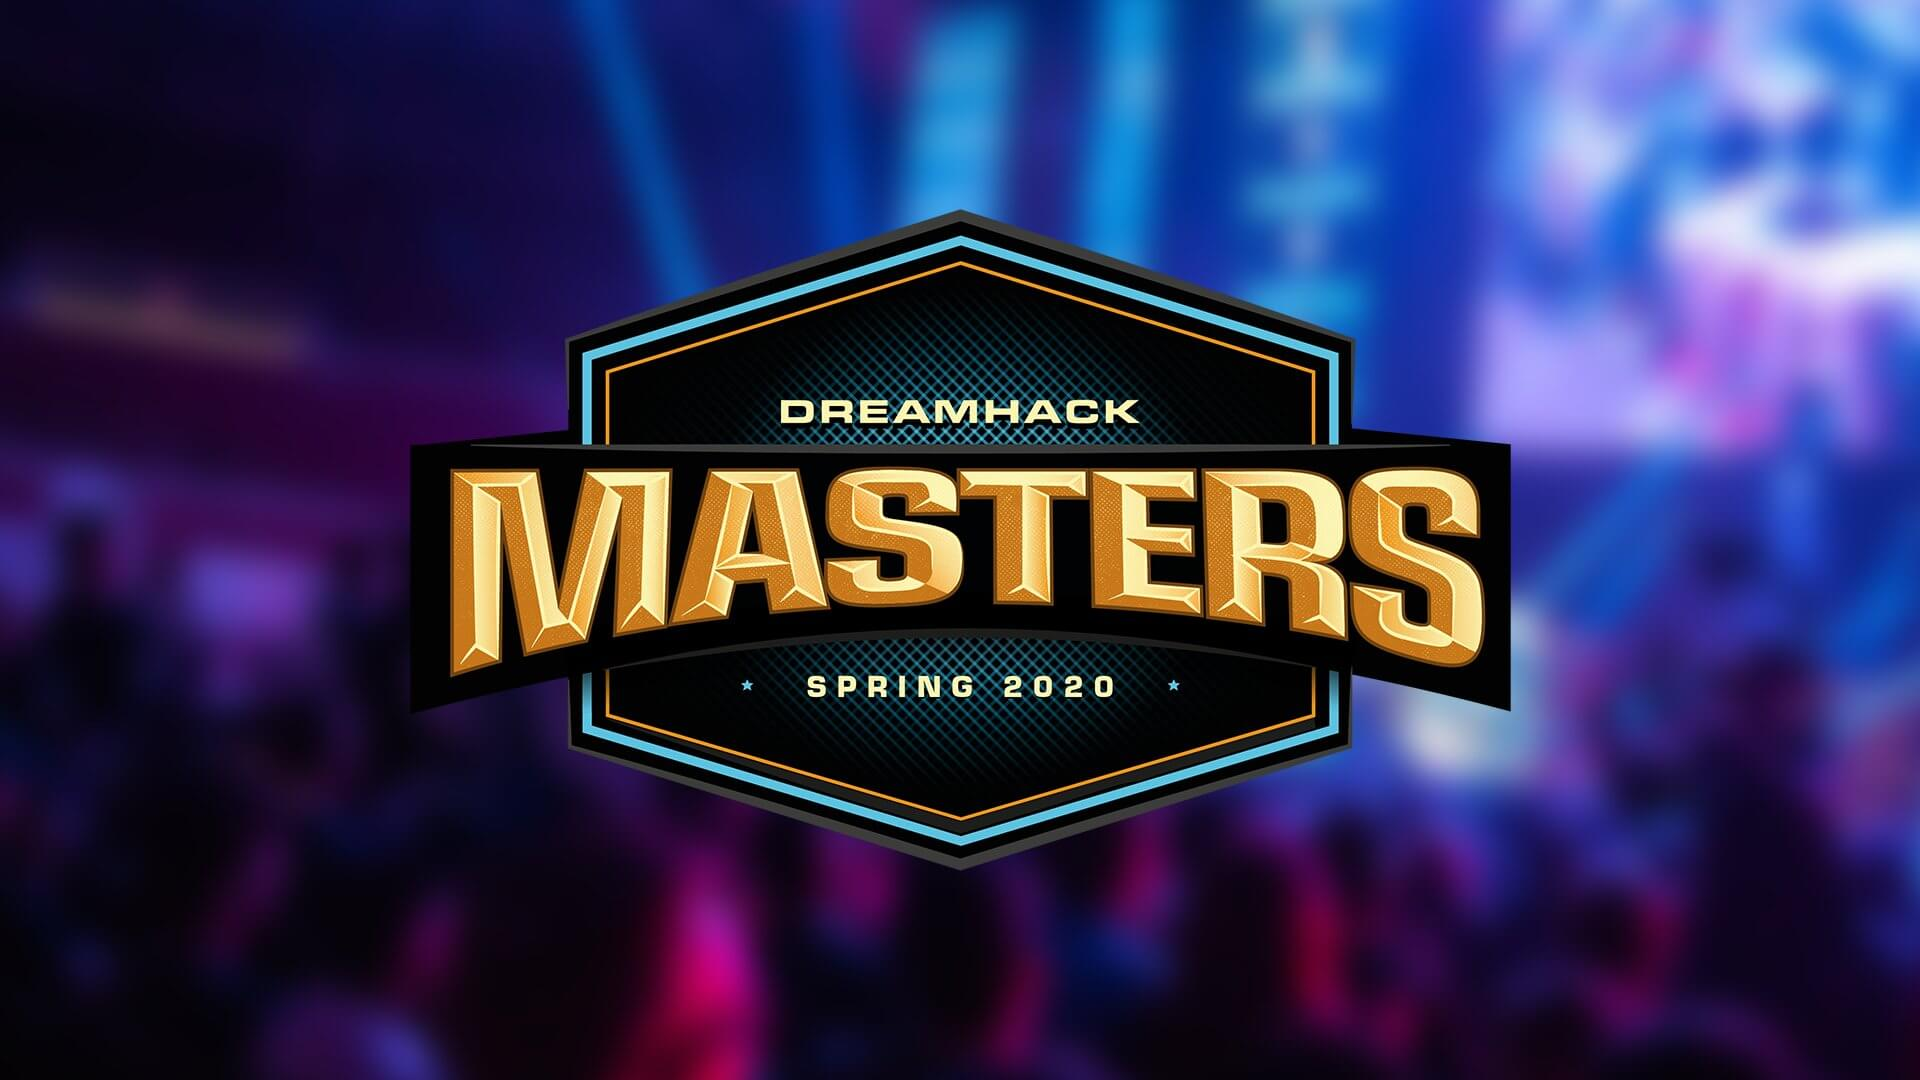 dreamhack masters spring 2020